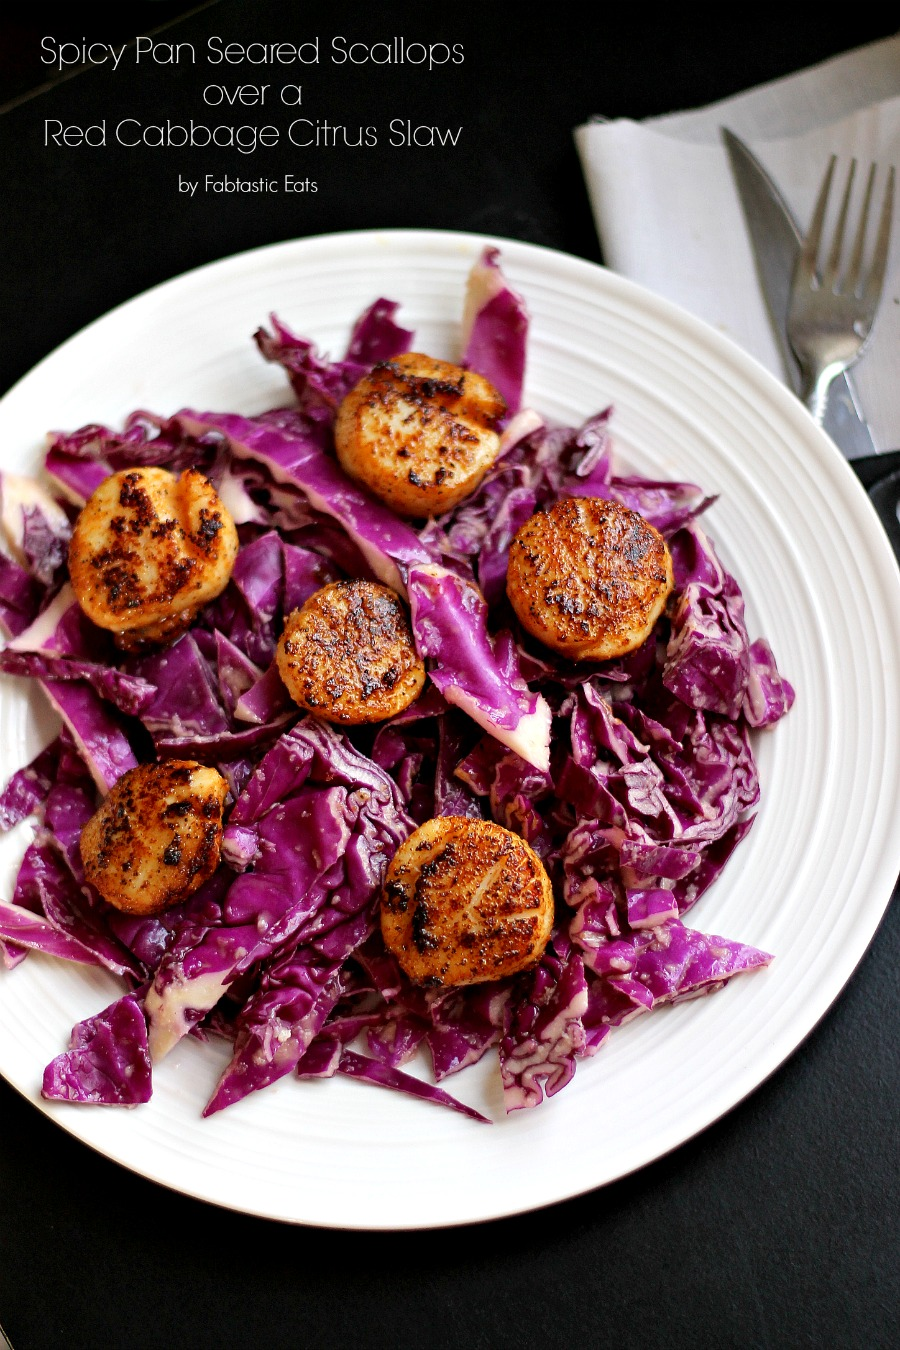 Spicy Pan Seared Scallops over a Red Cabbage Citrus Slaw